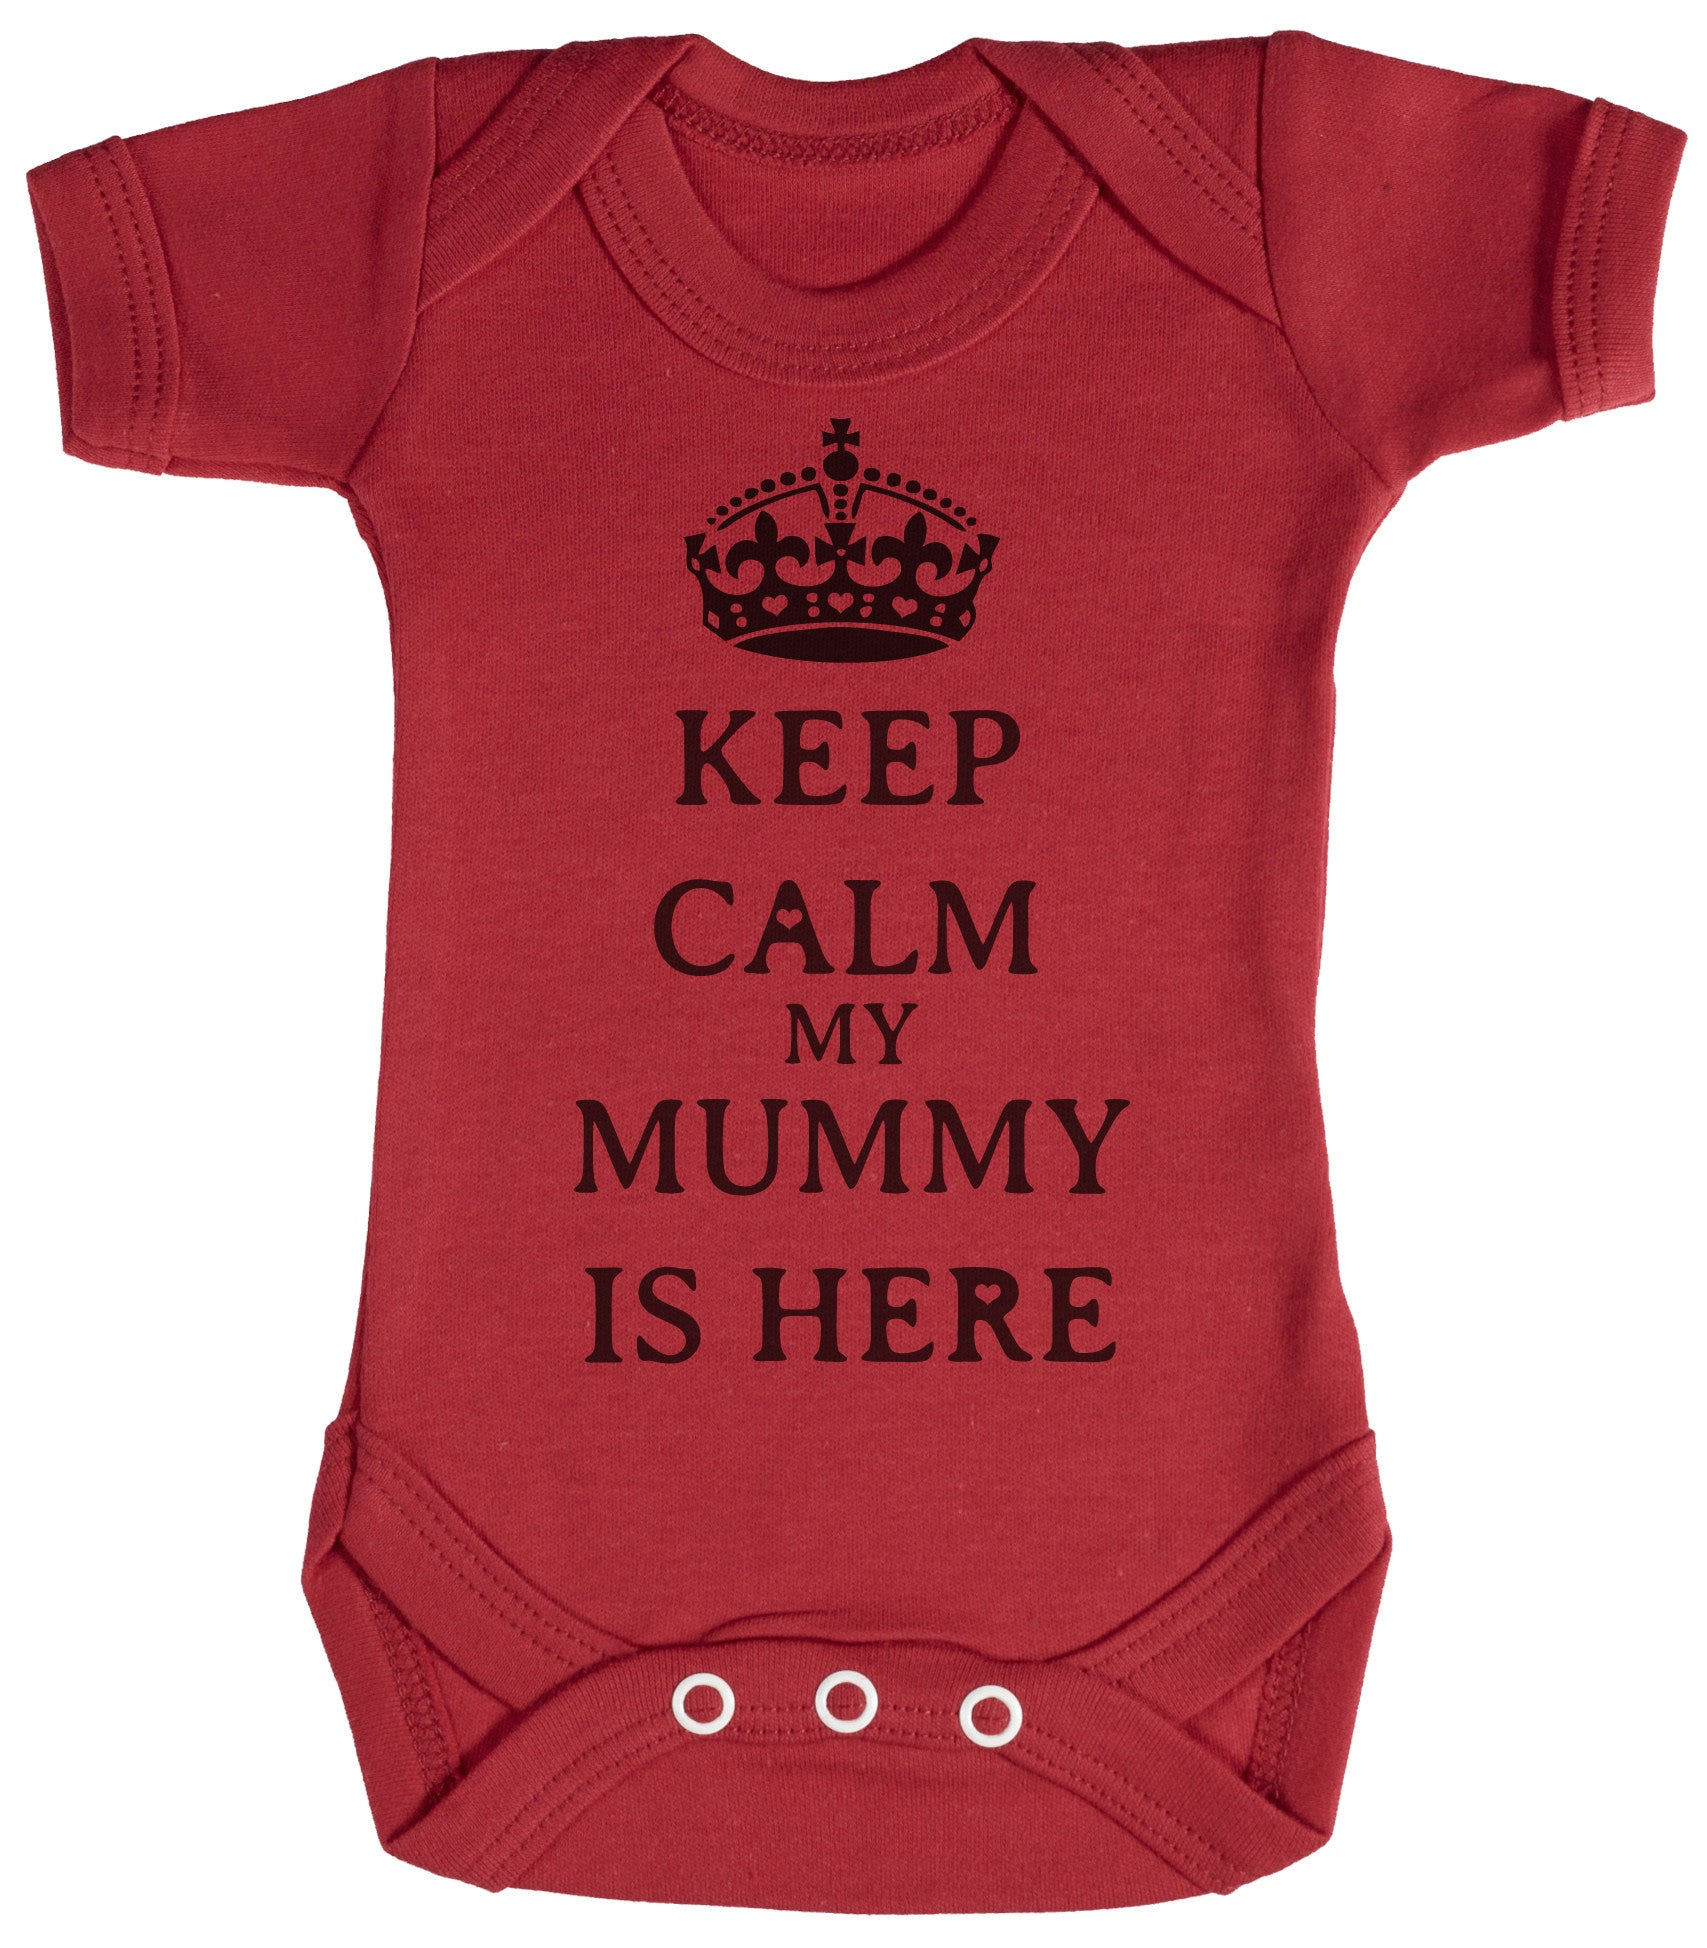 Calm Mummy is Here Baby Bodysuit / Babygrow